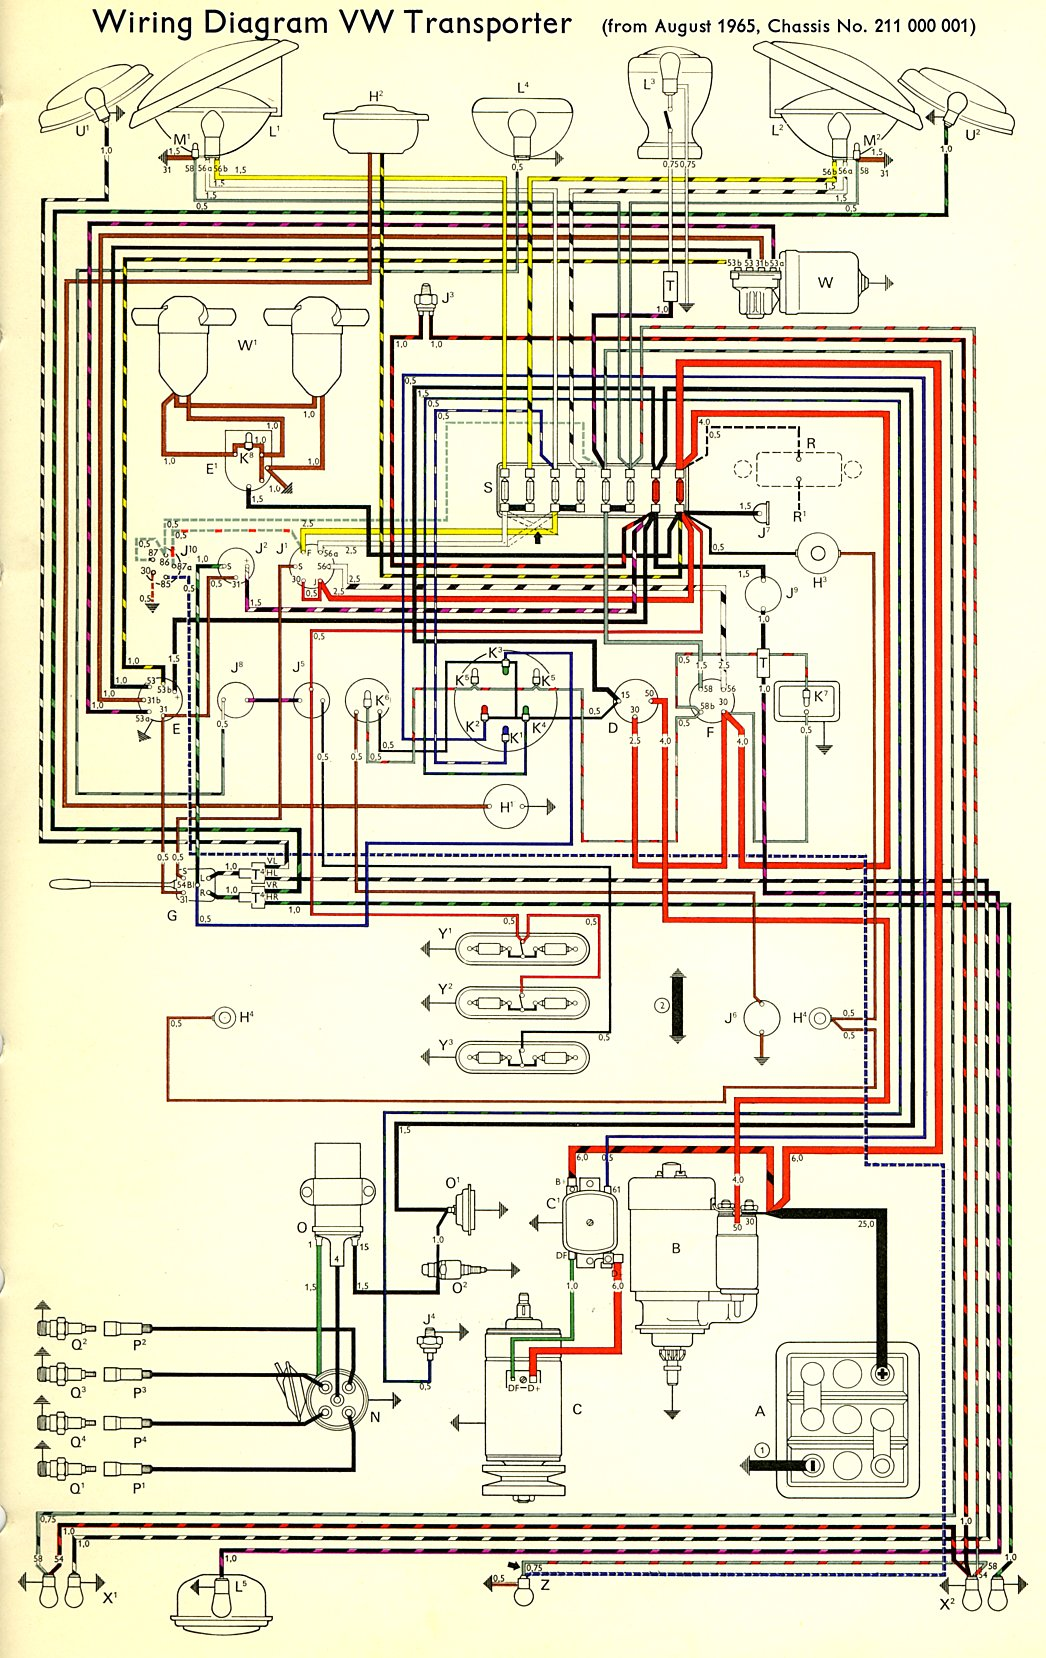 alternator wiring diagram 1974 vw bus parts wiring. Black Bedroom Furniture Sets. Home Design Ideas